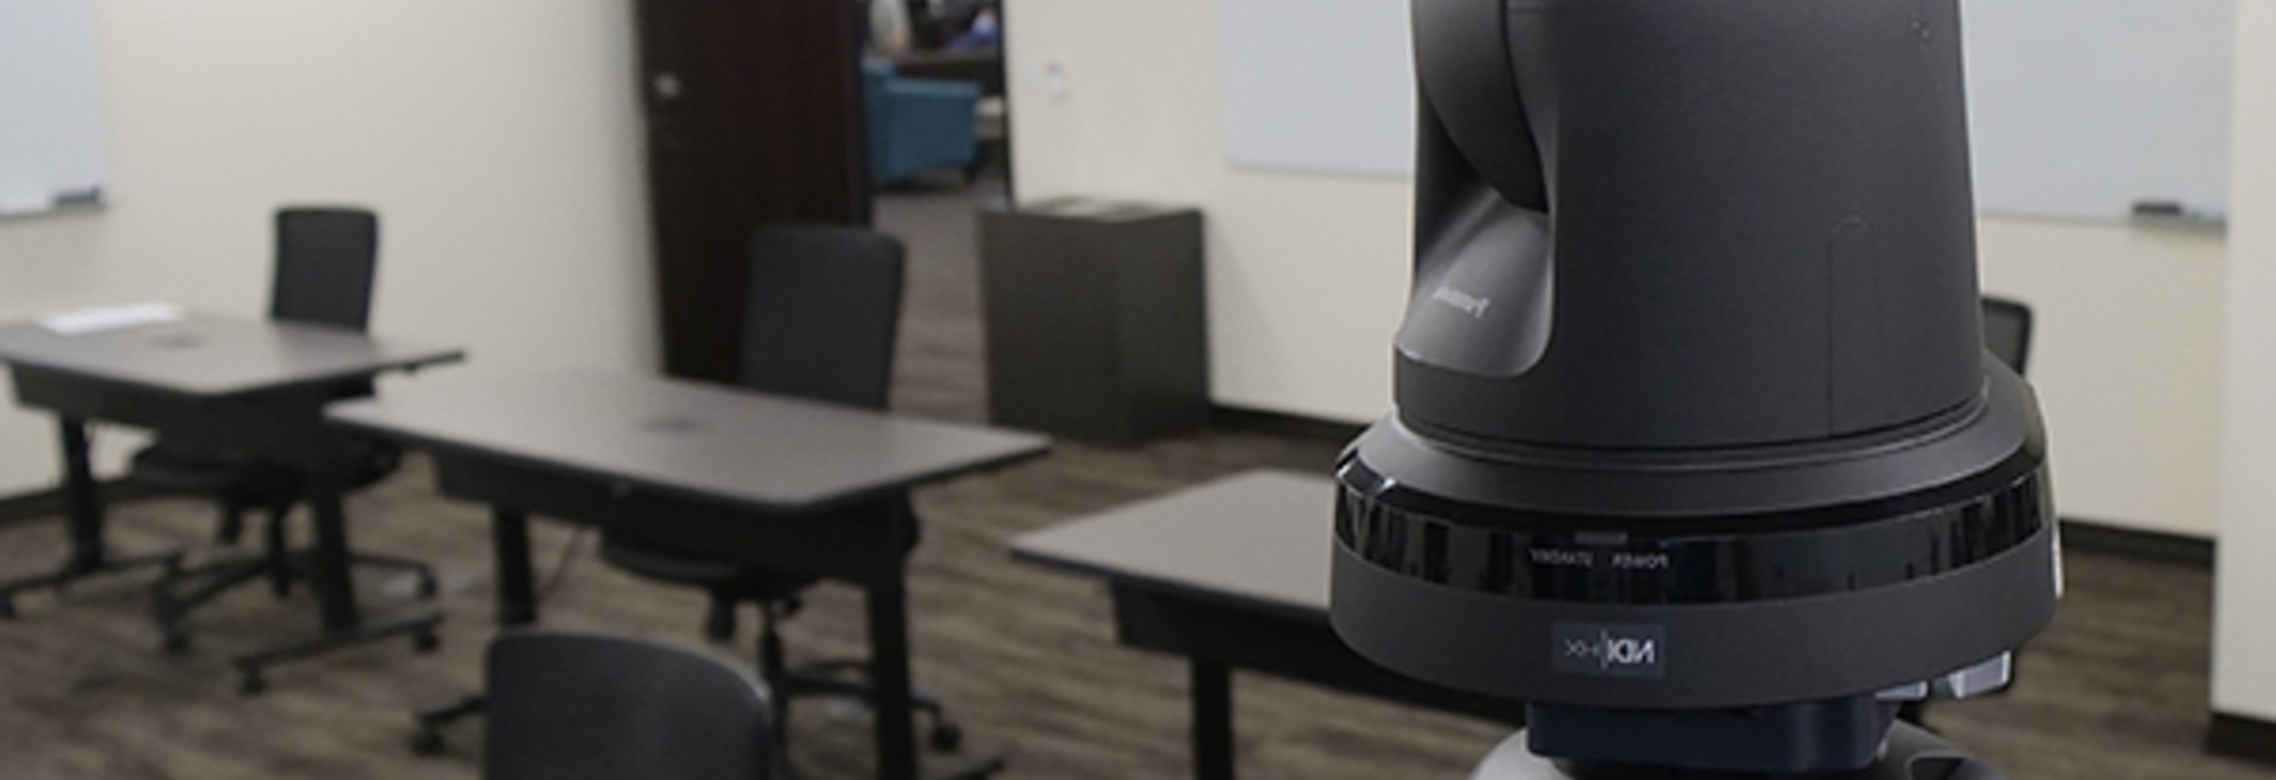 Panasonic AW-HE38 robotic camera for use with EduFlex hybrid video software for remote learning and distance classrooms